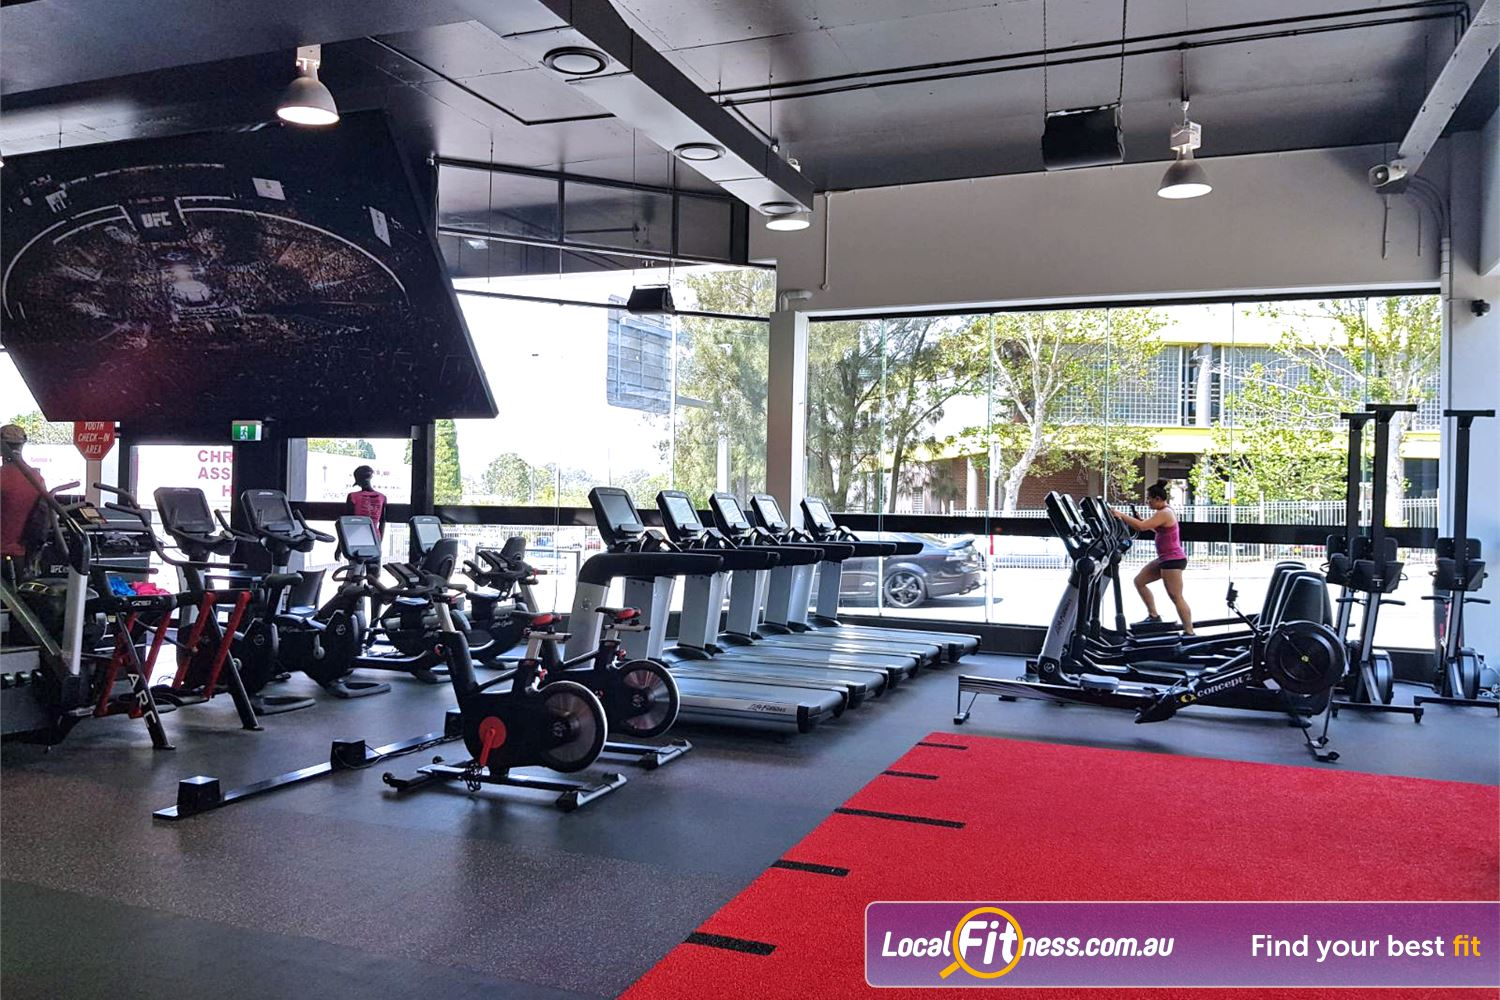 UFC Gym Near Huntingwood Fully equipped cardio area with treadmills, bikes, cross-trainers and more.